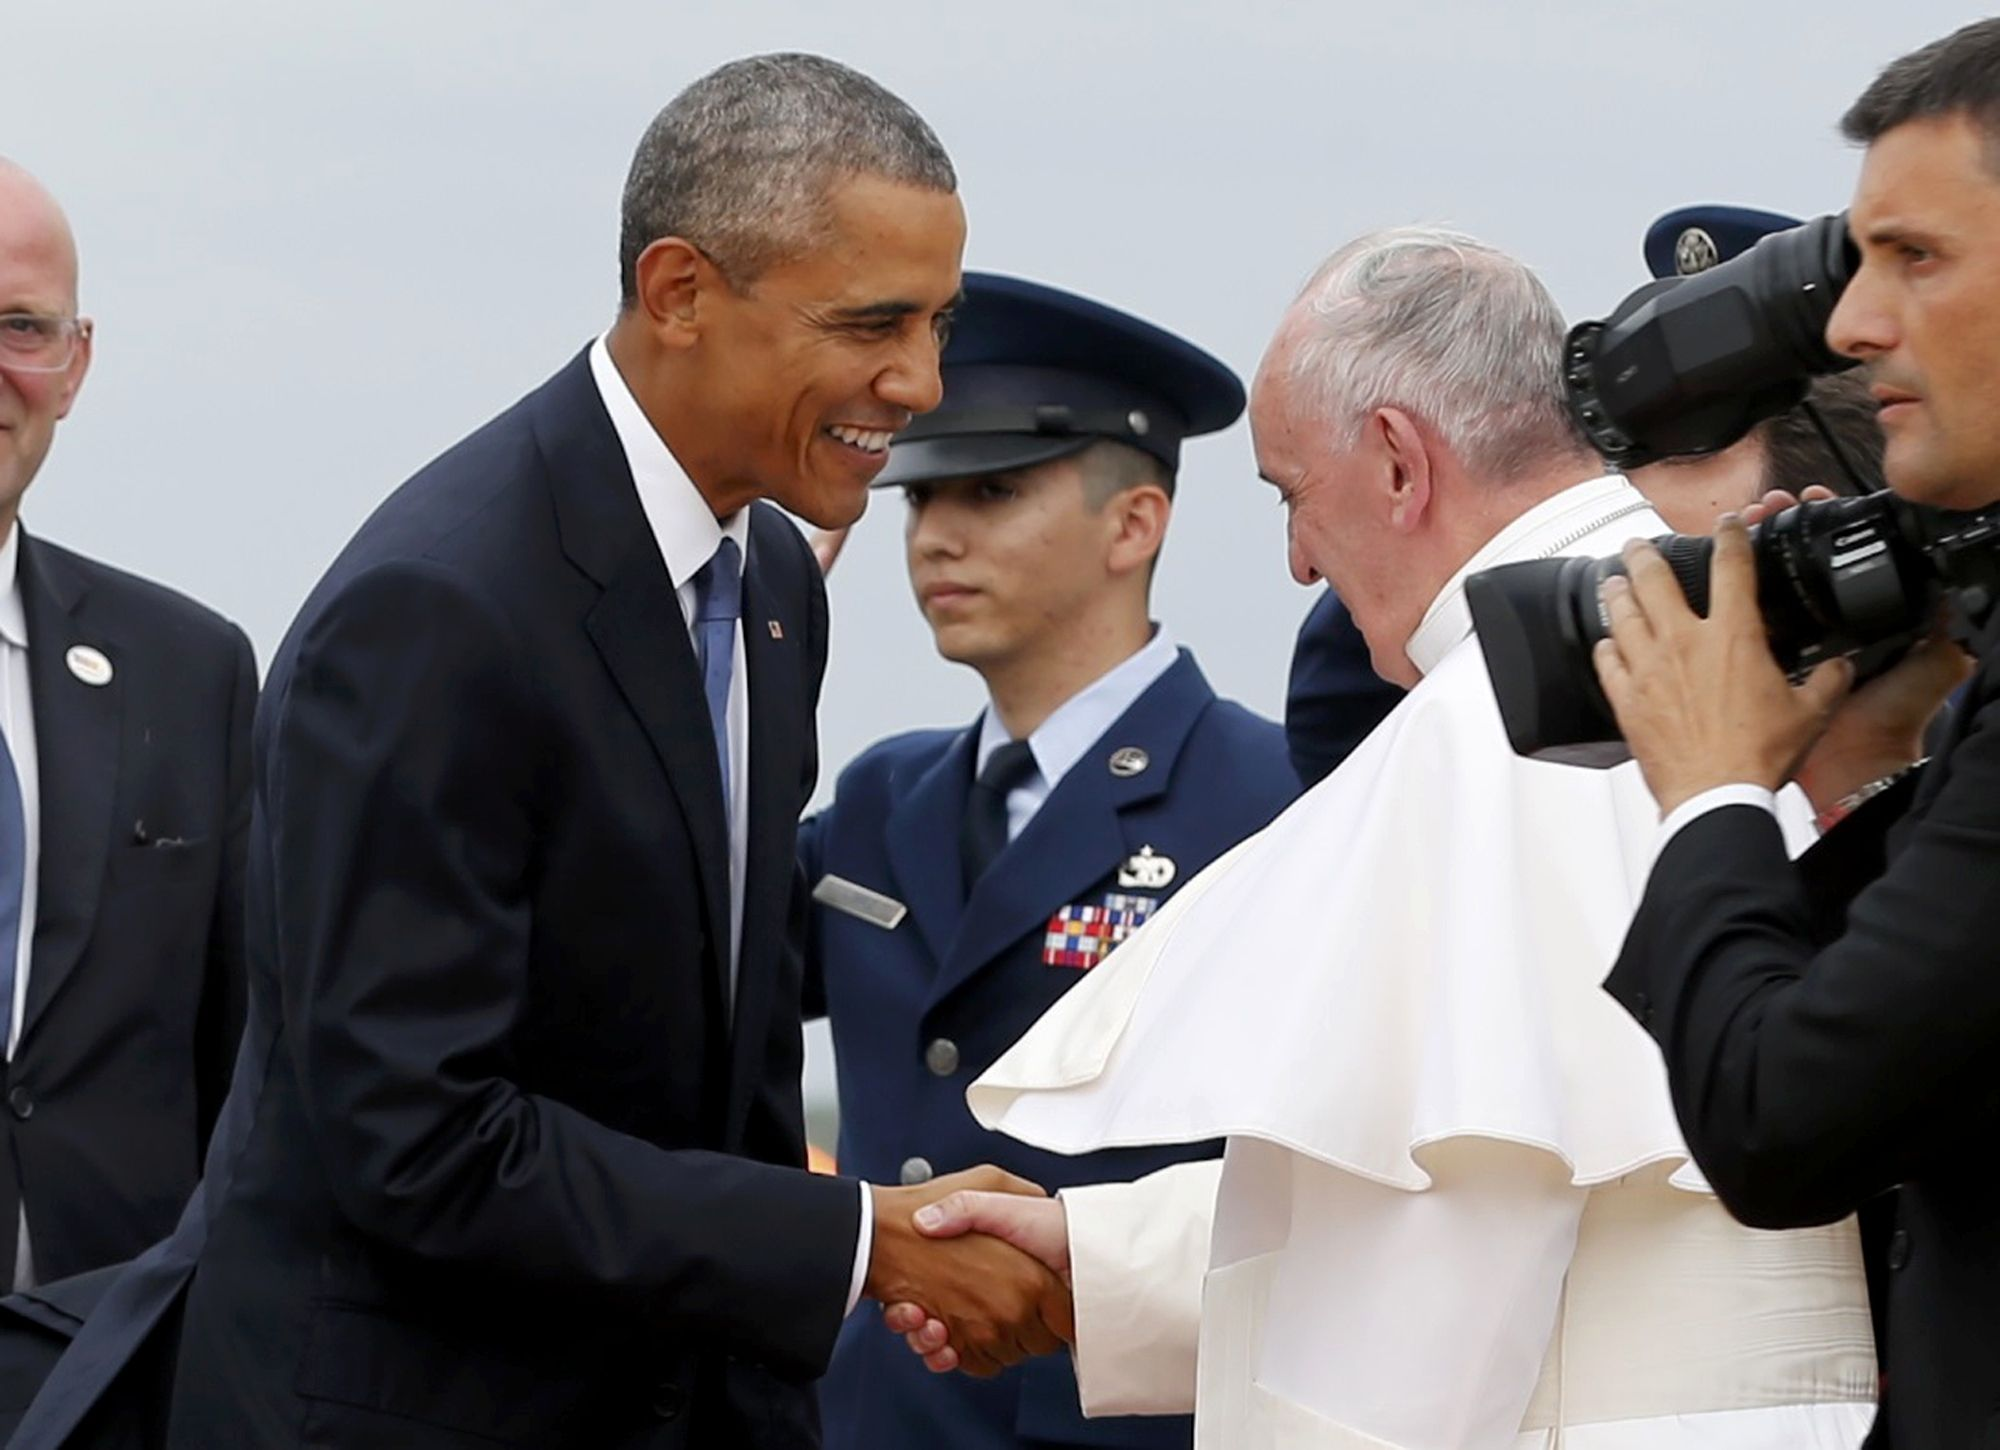 President Obama shakes hands with the pope